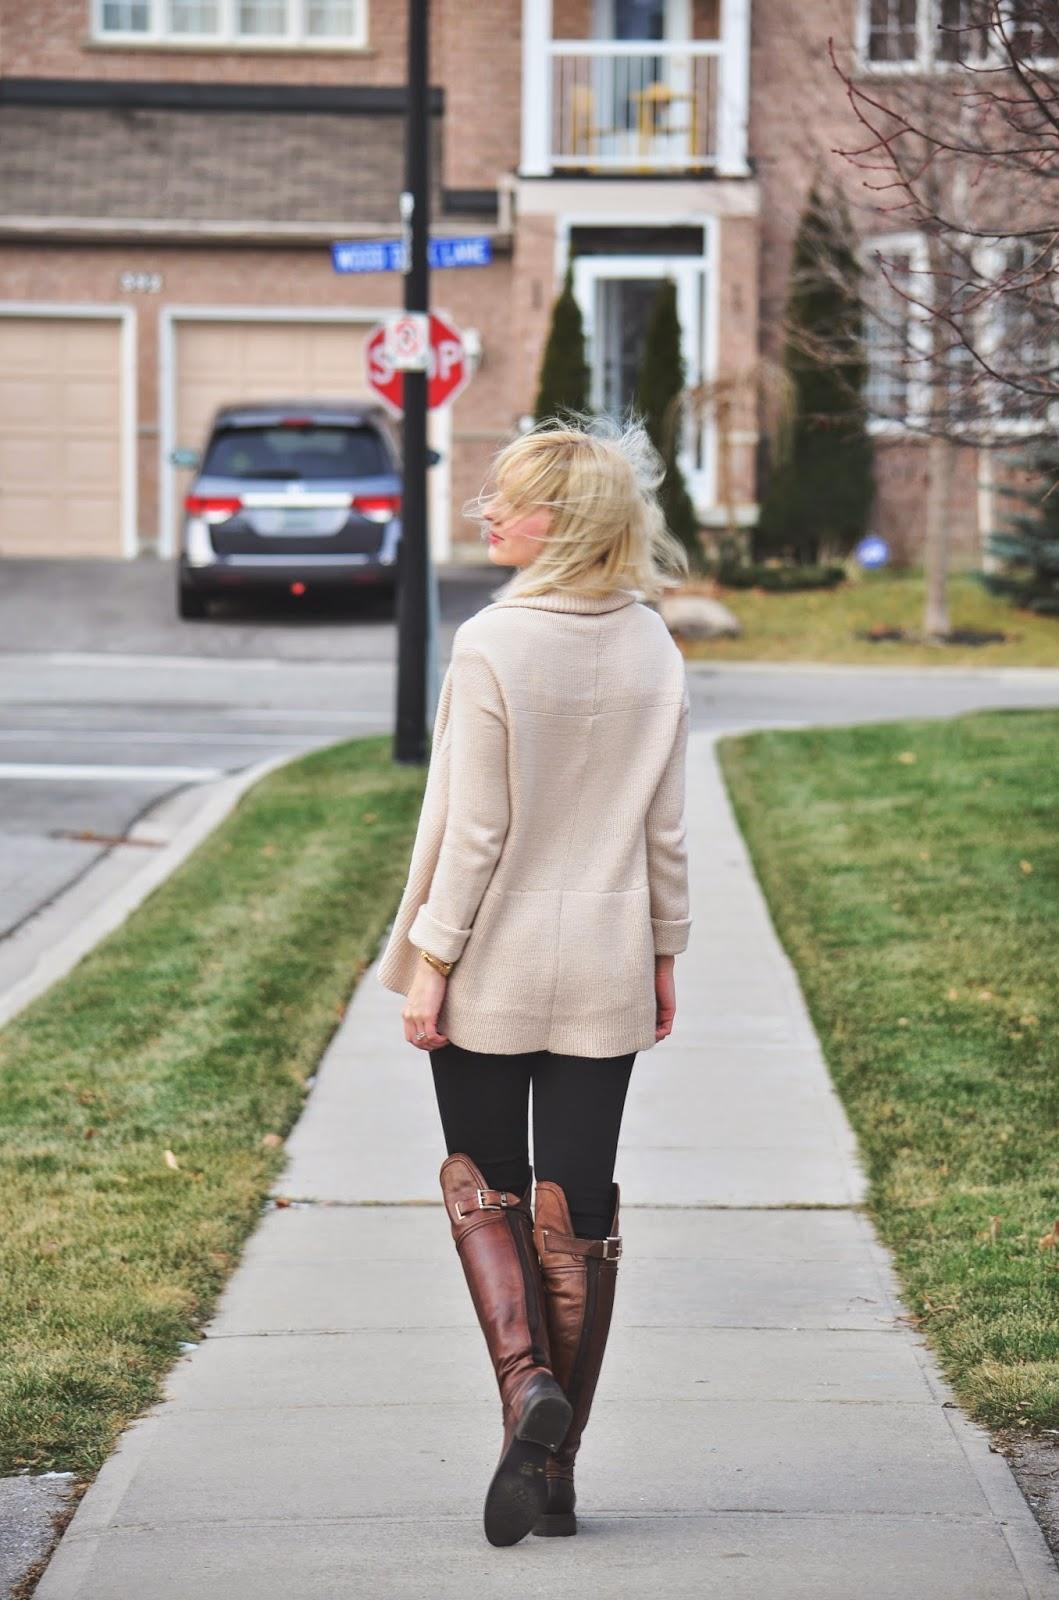 Style, OOTD, Casual, OldNavy, Zara, Vince Camuto, Smart Set, comfy, oversized cardigan, beige cardigan, cardigan style